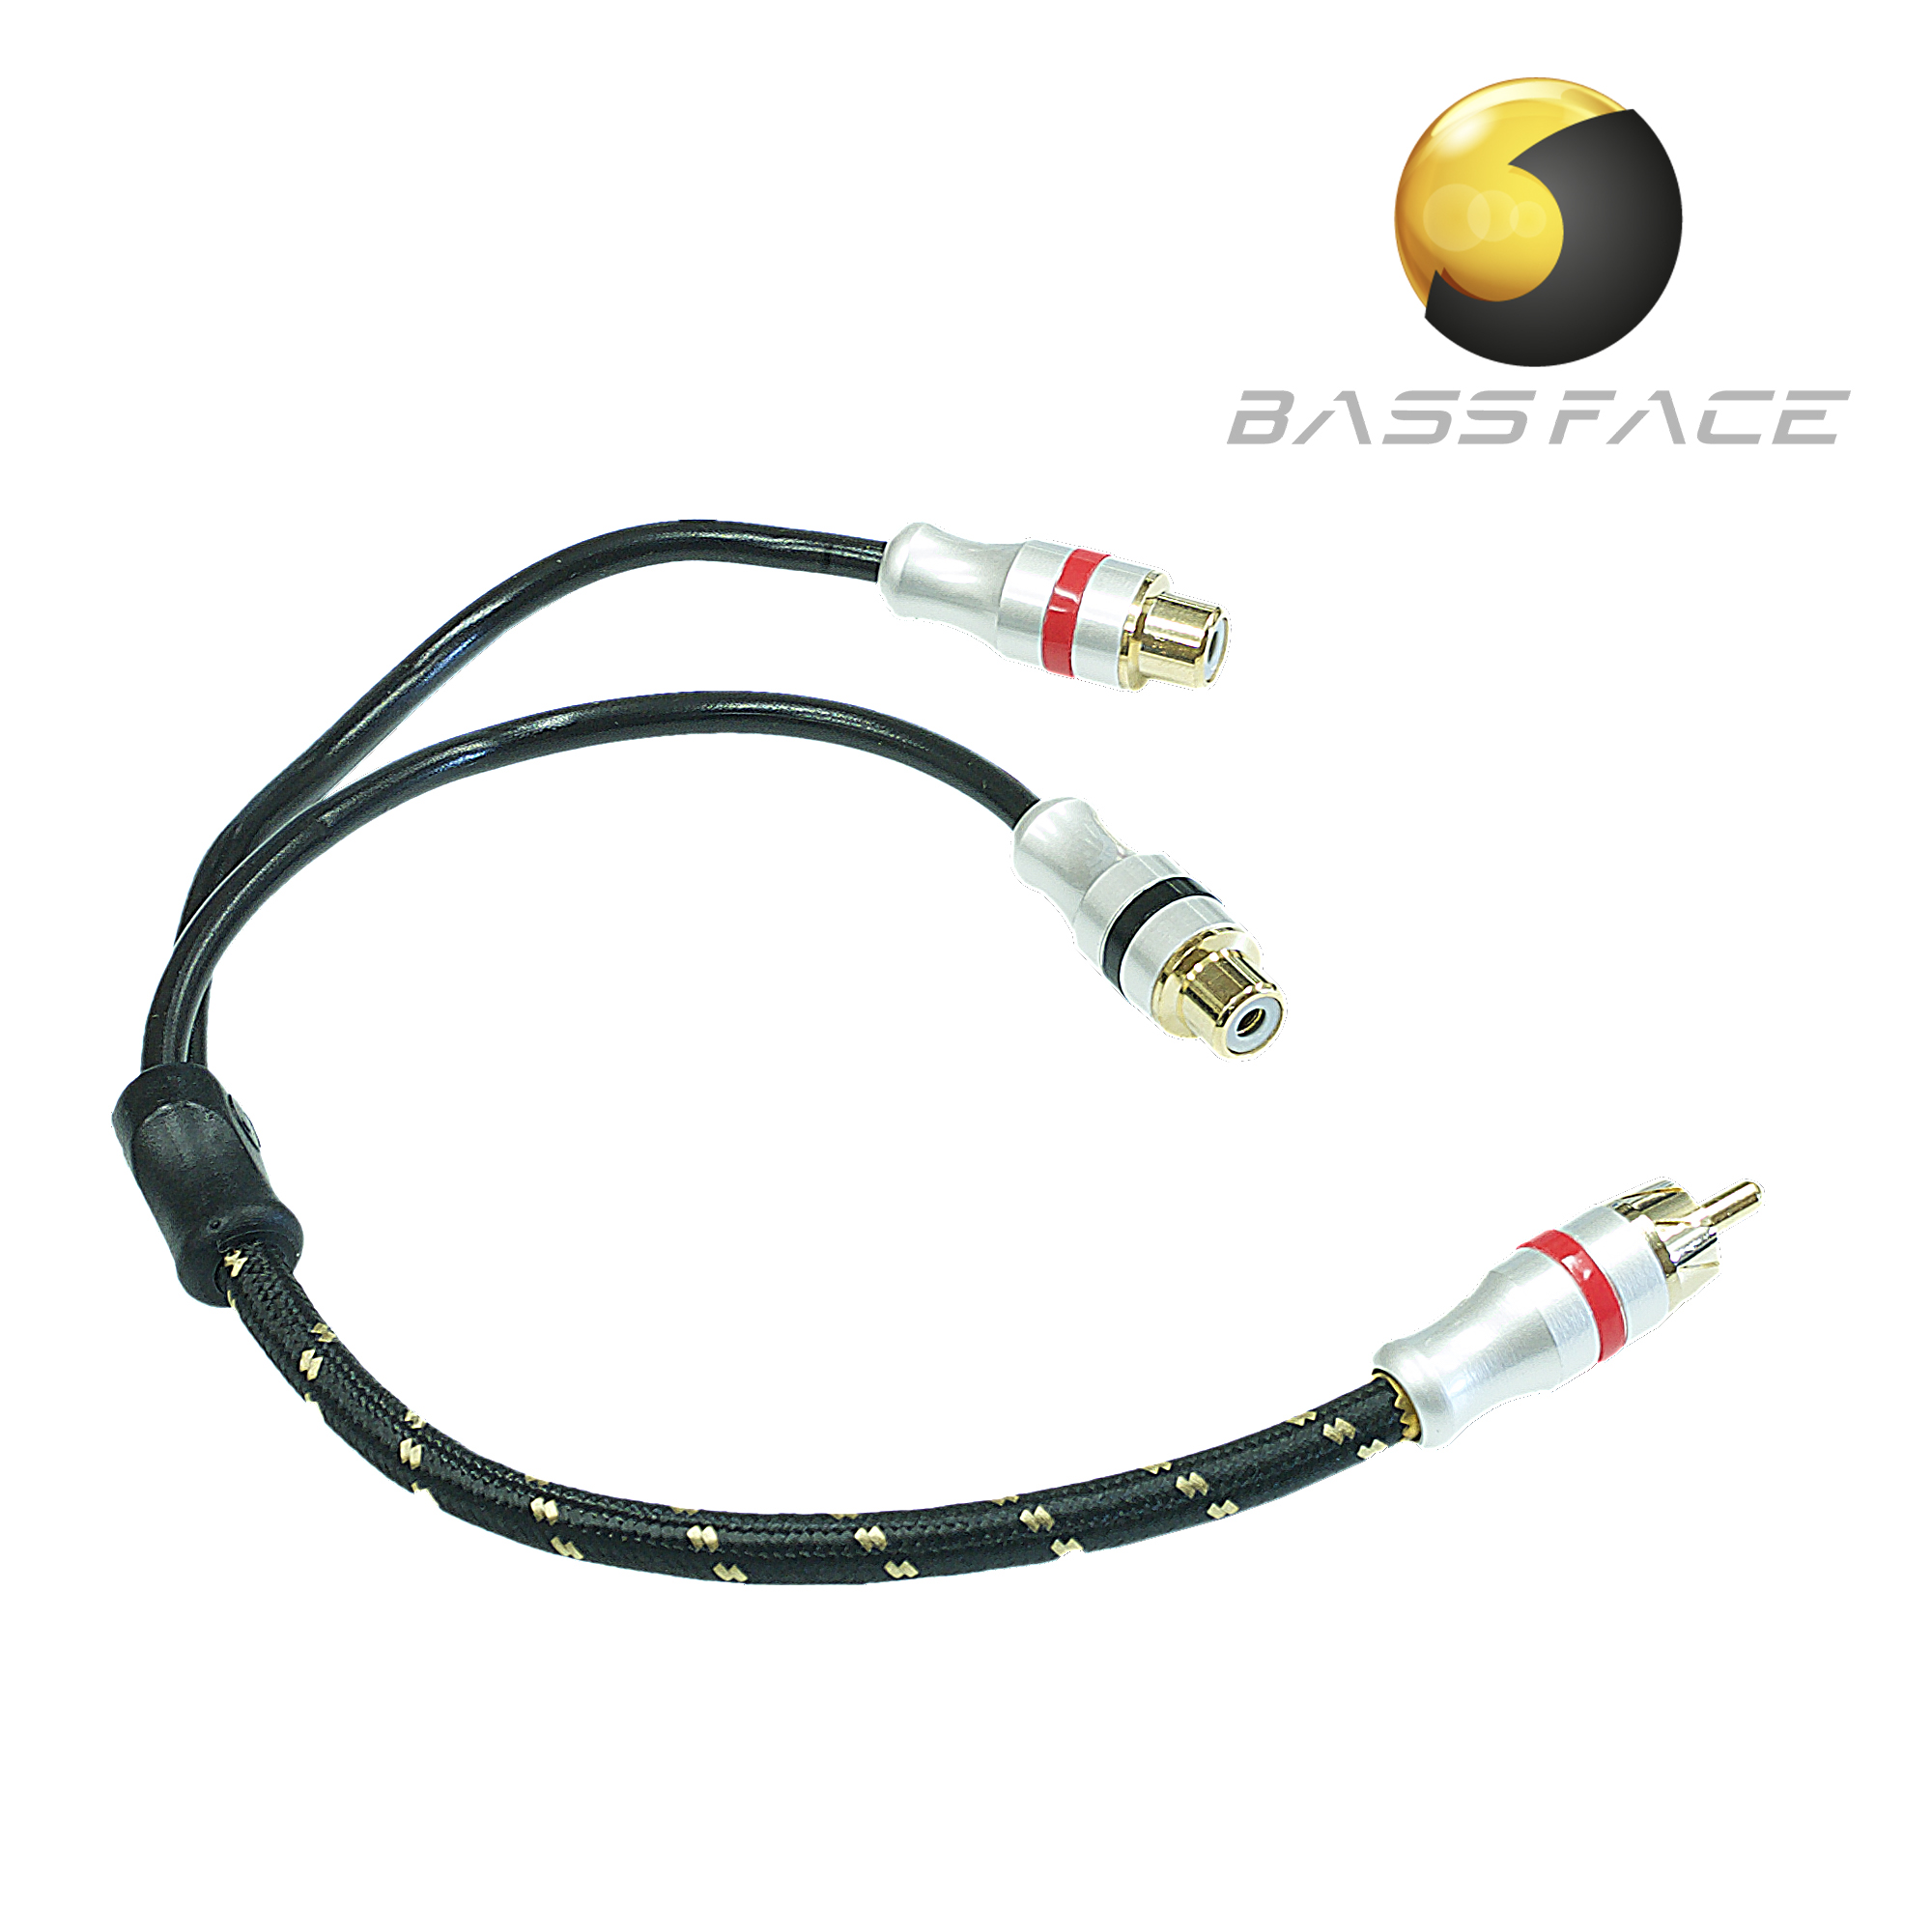 Bassface Car Audio The Specialists Double Socket Wiring Diagram Uk Prcaym2 Quad Core Pure Ofc Twist Shielded Rca Y Lead Splitter 2m 1f